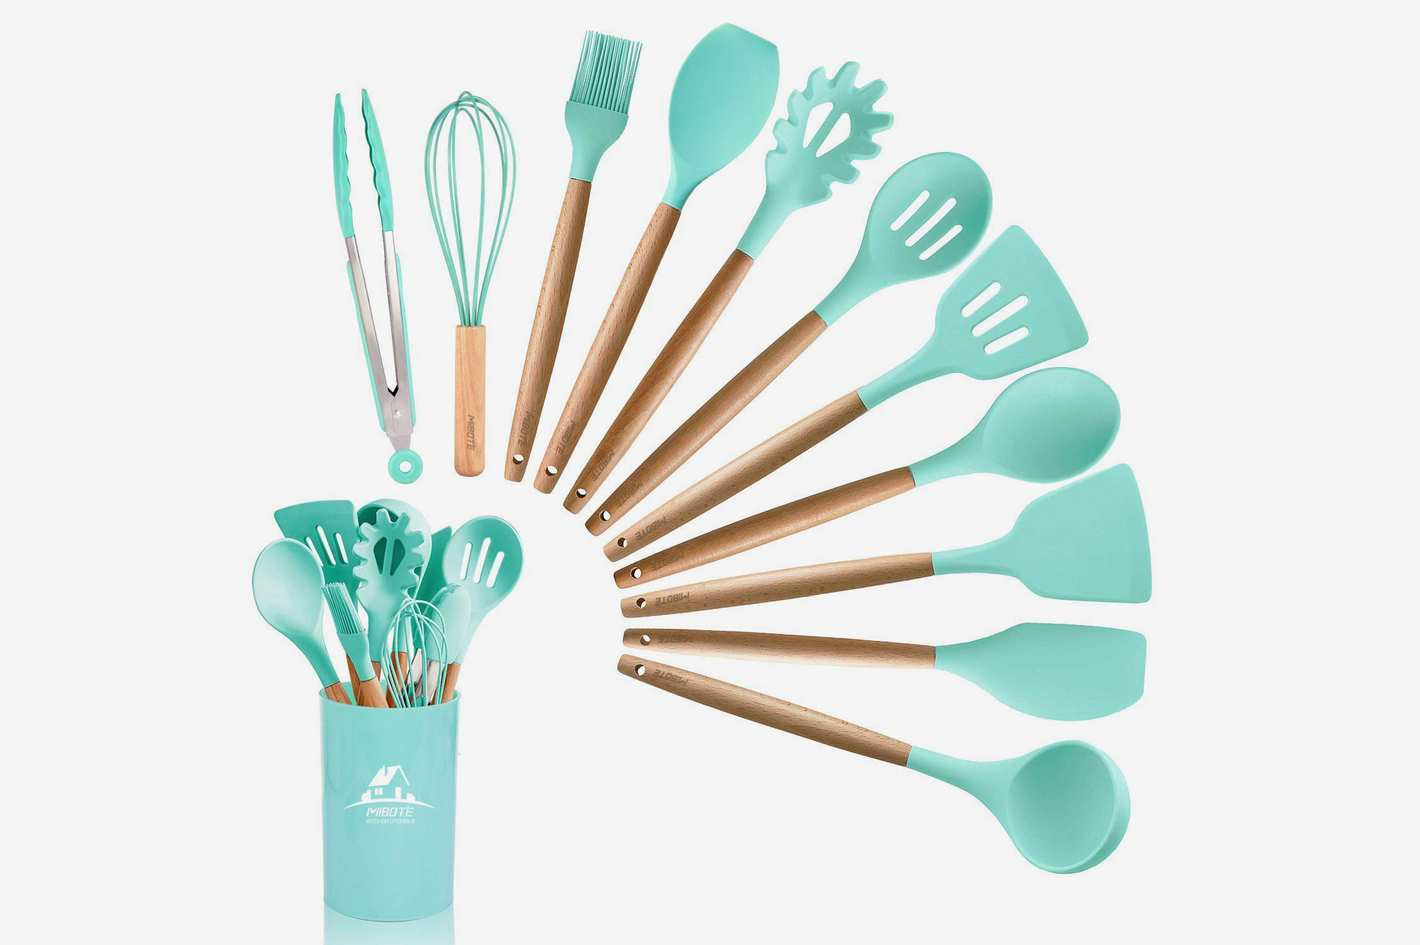 The Best Kitchen Utensil Sets on Amazon, According to Hyperenthusiastic Reviewers